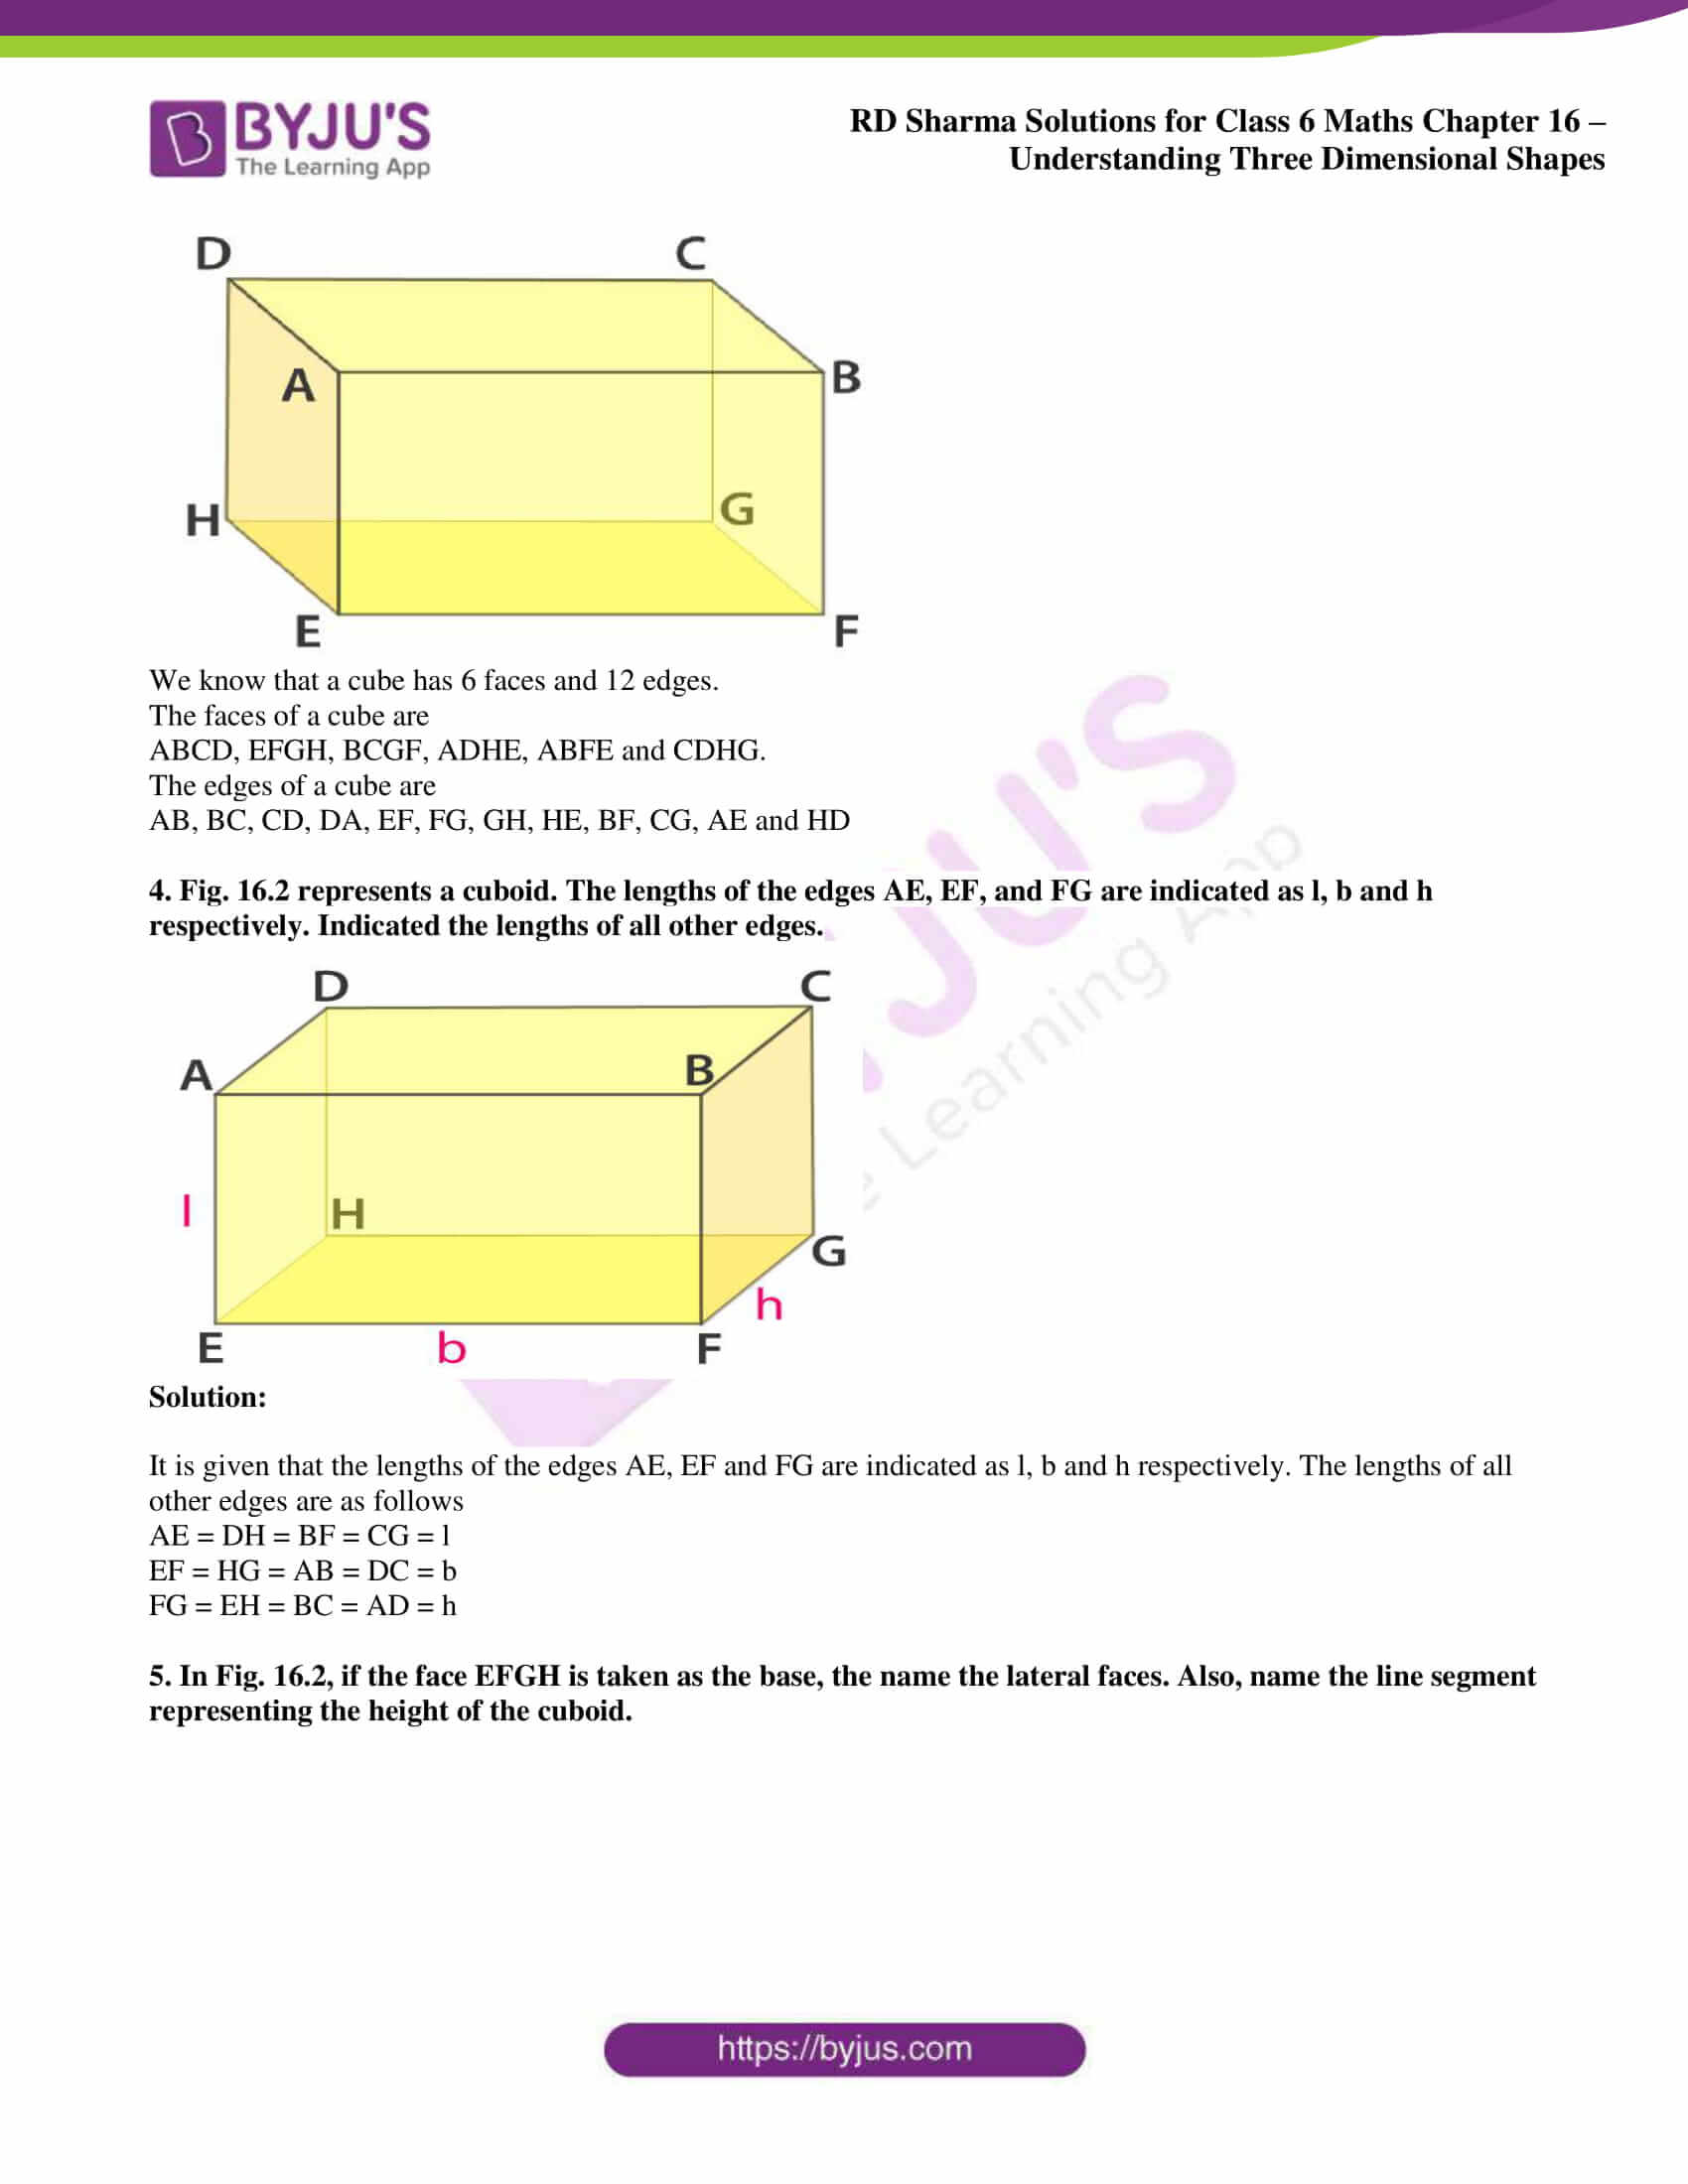 rd sharma solutions nov2020 class 6 maths chapter 16 exercise 1 2